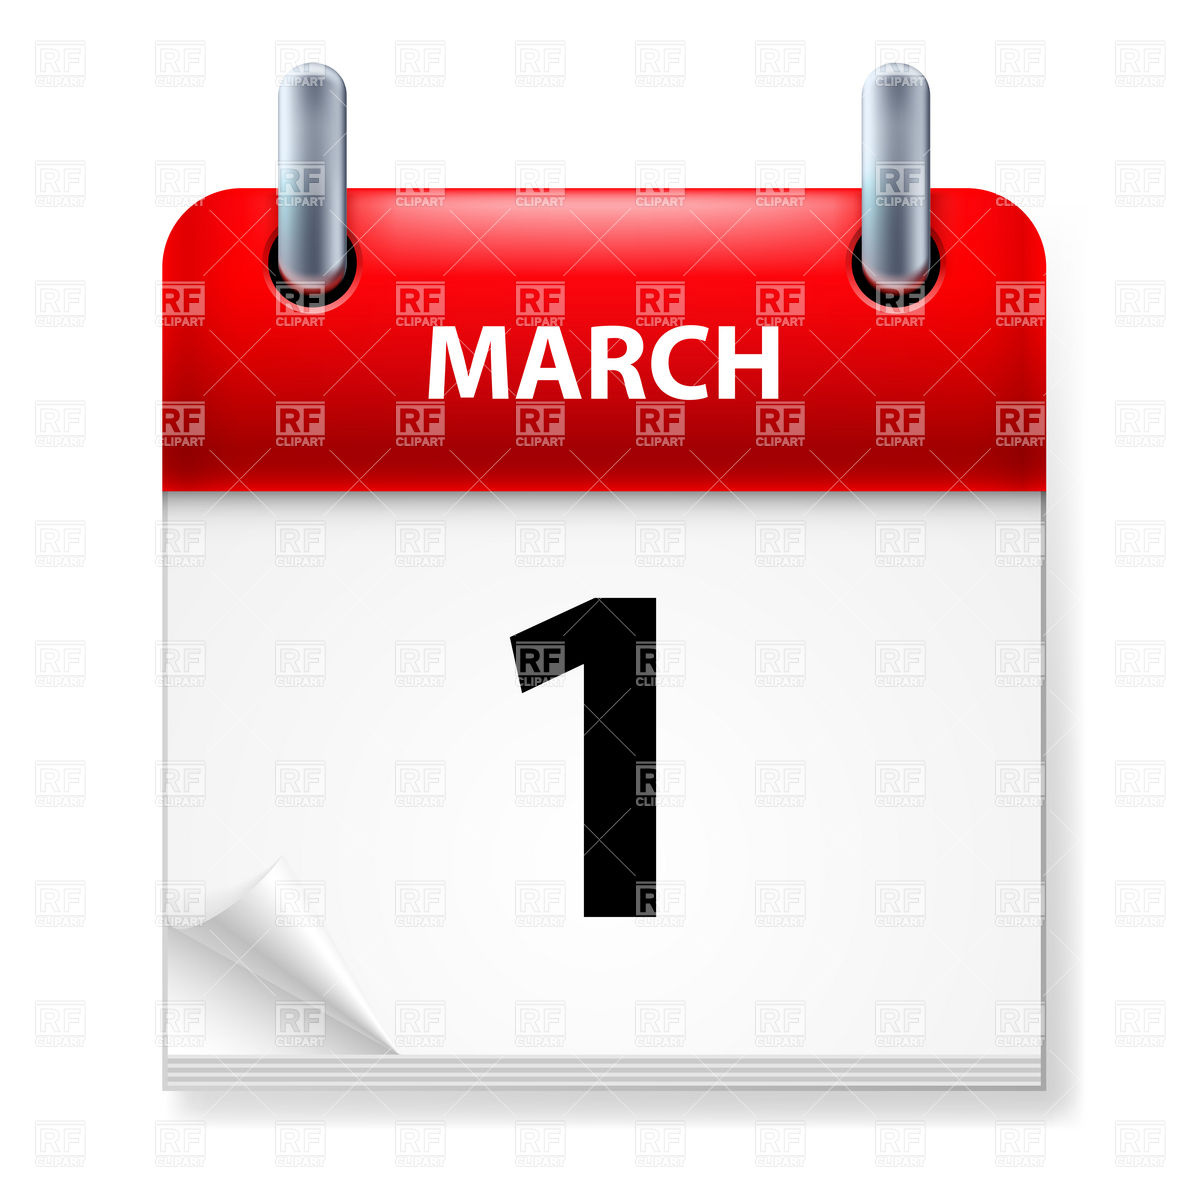 March 1 calendar page clipart banner royalty free stock March 1 calendar page clipart - ClipartFest banner royalty free stock